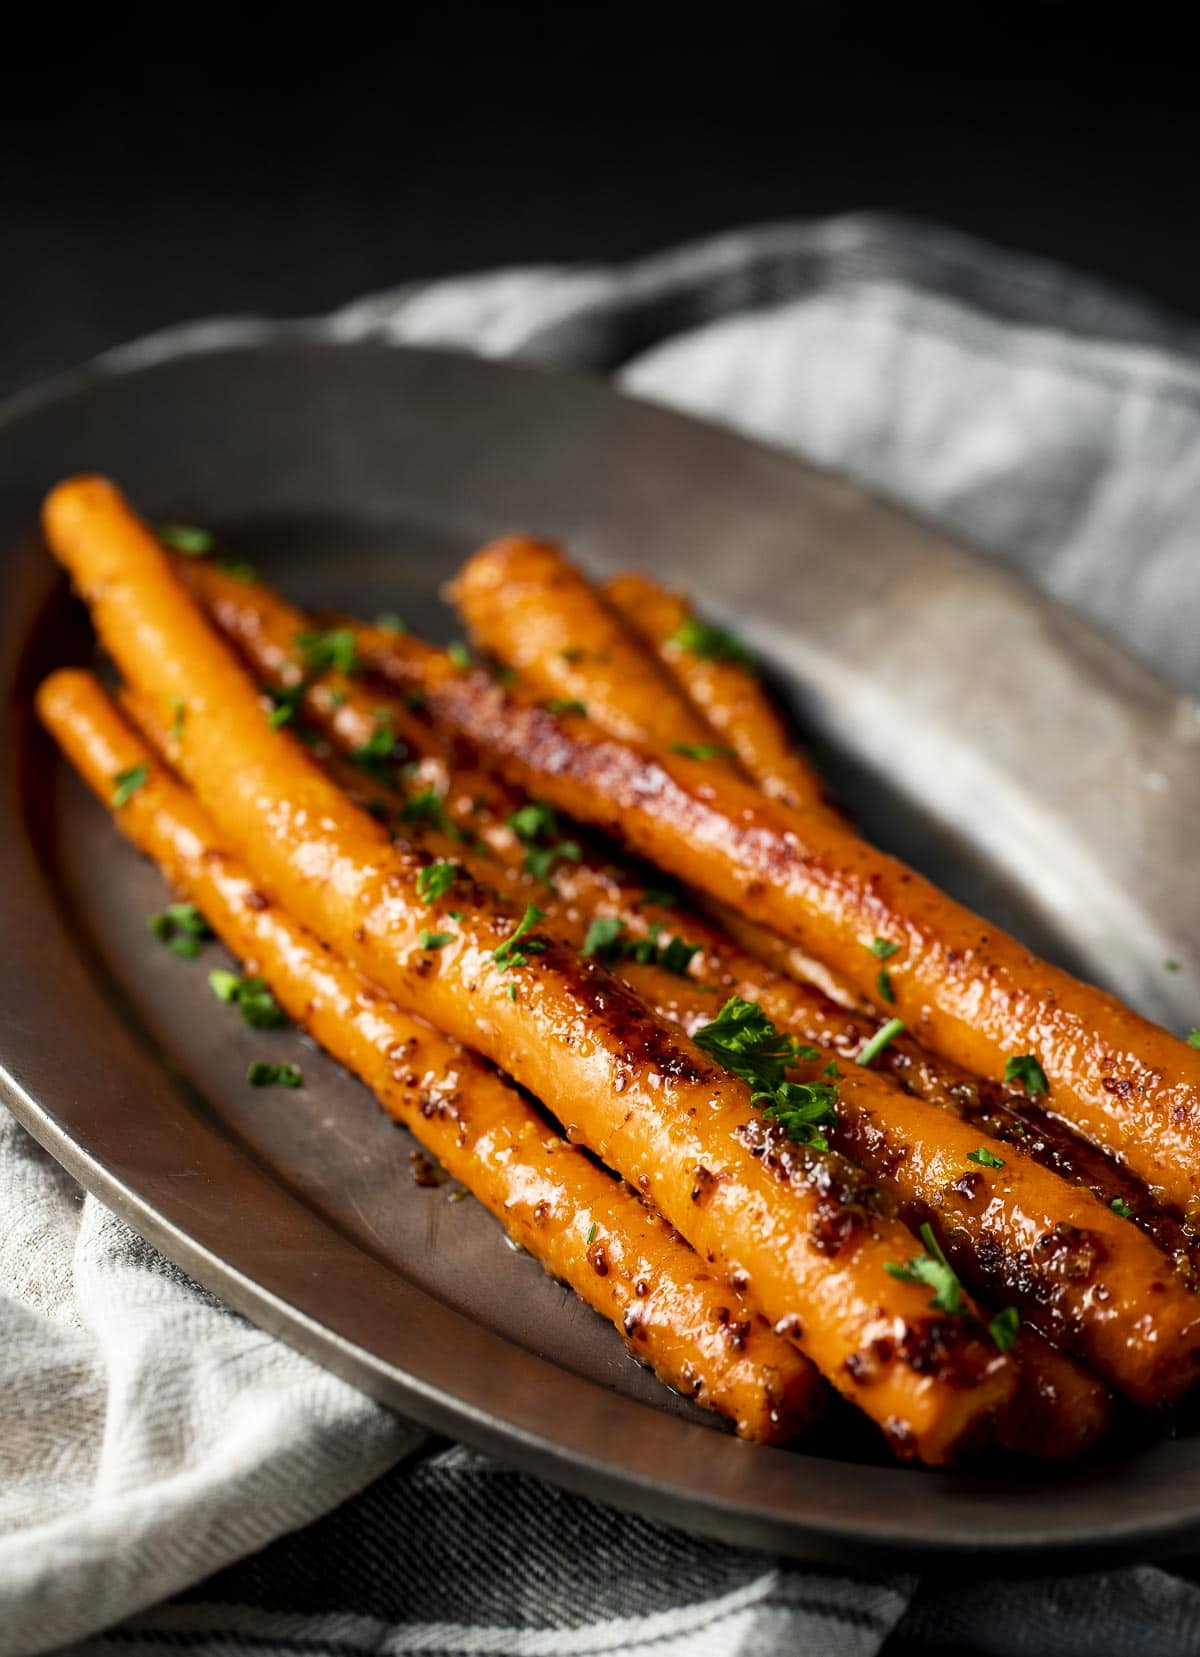 Sous vide carrots on a serving tray.